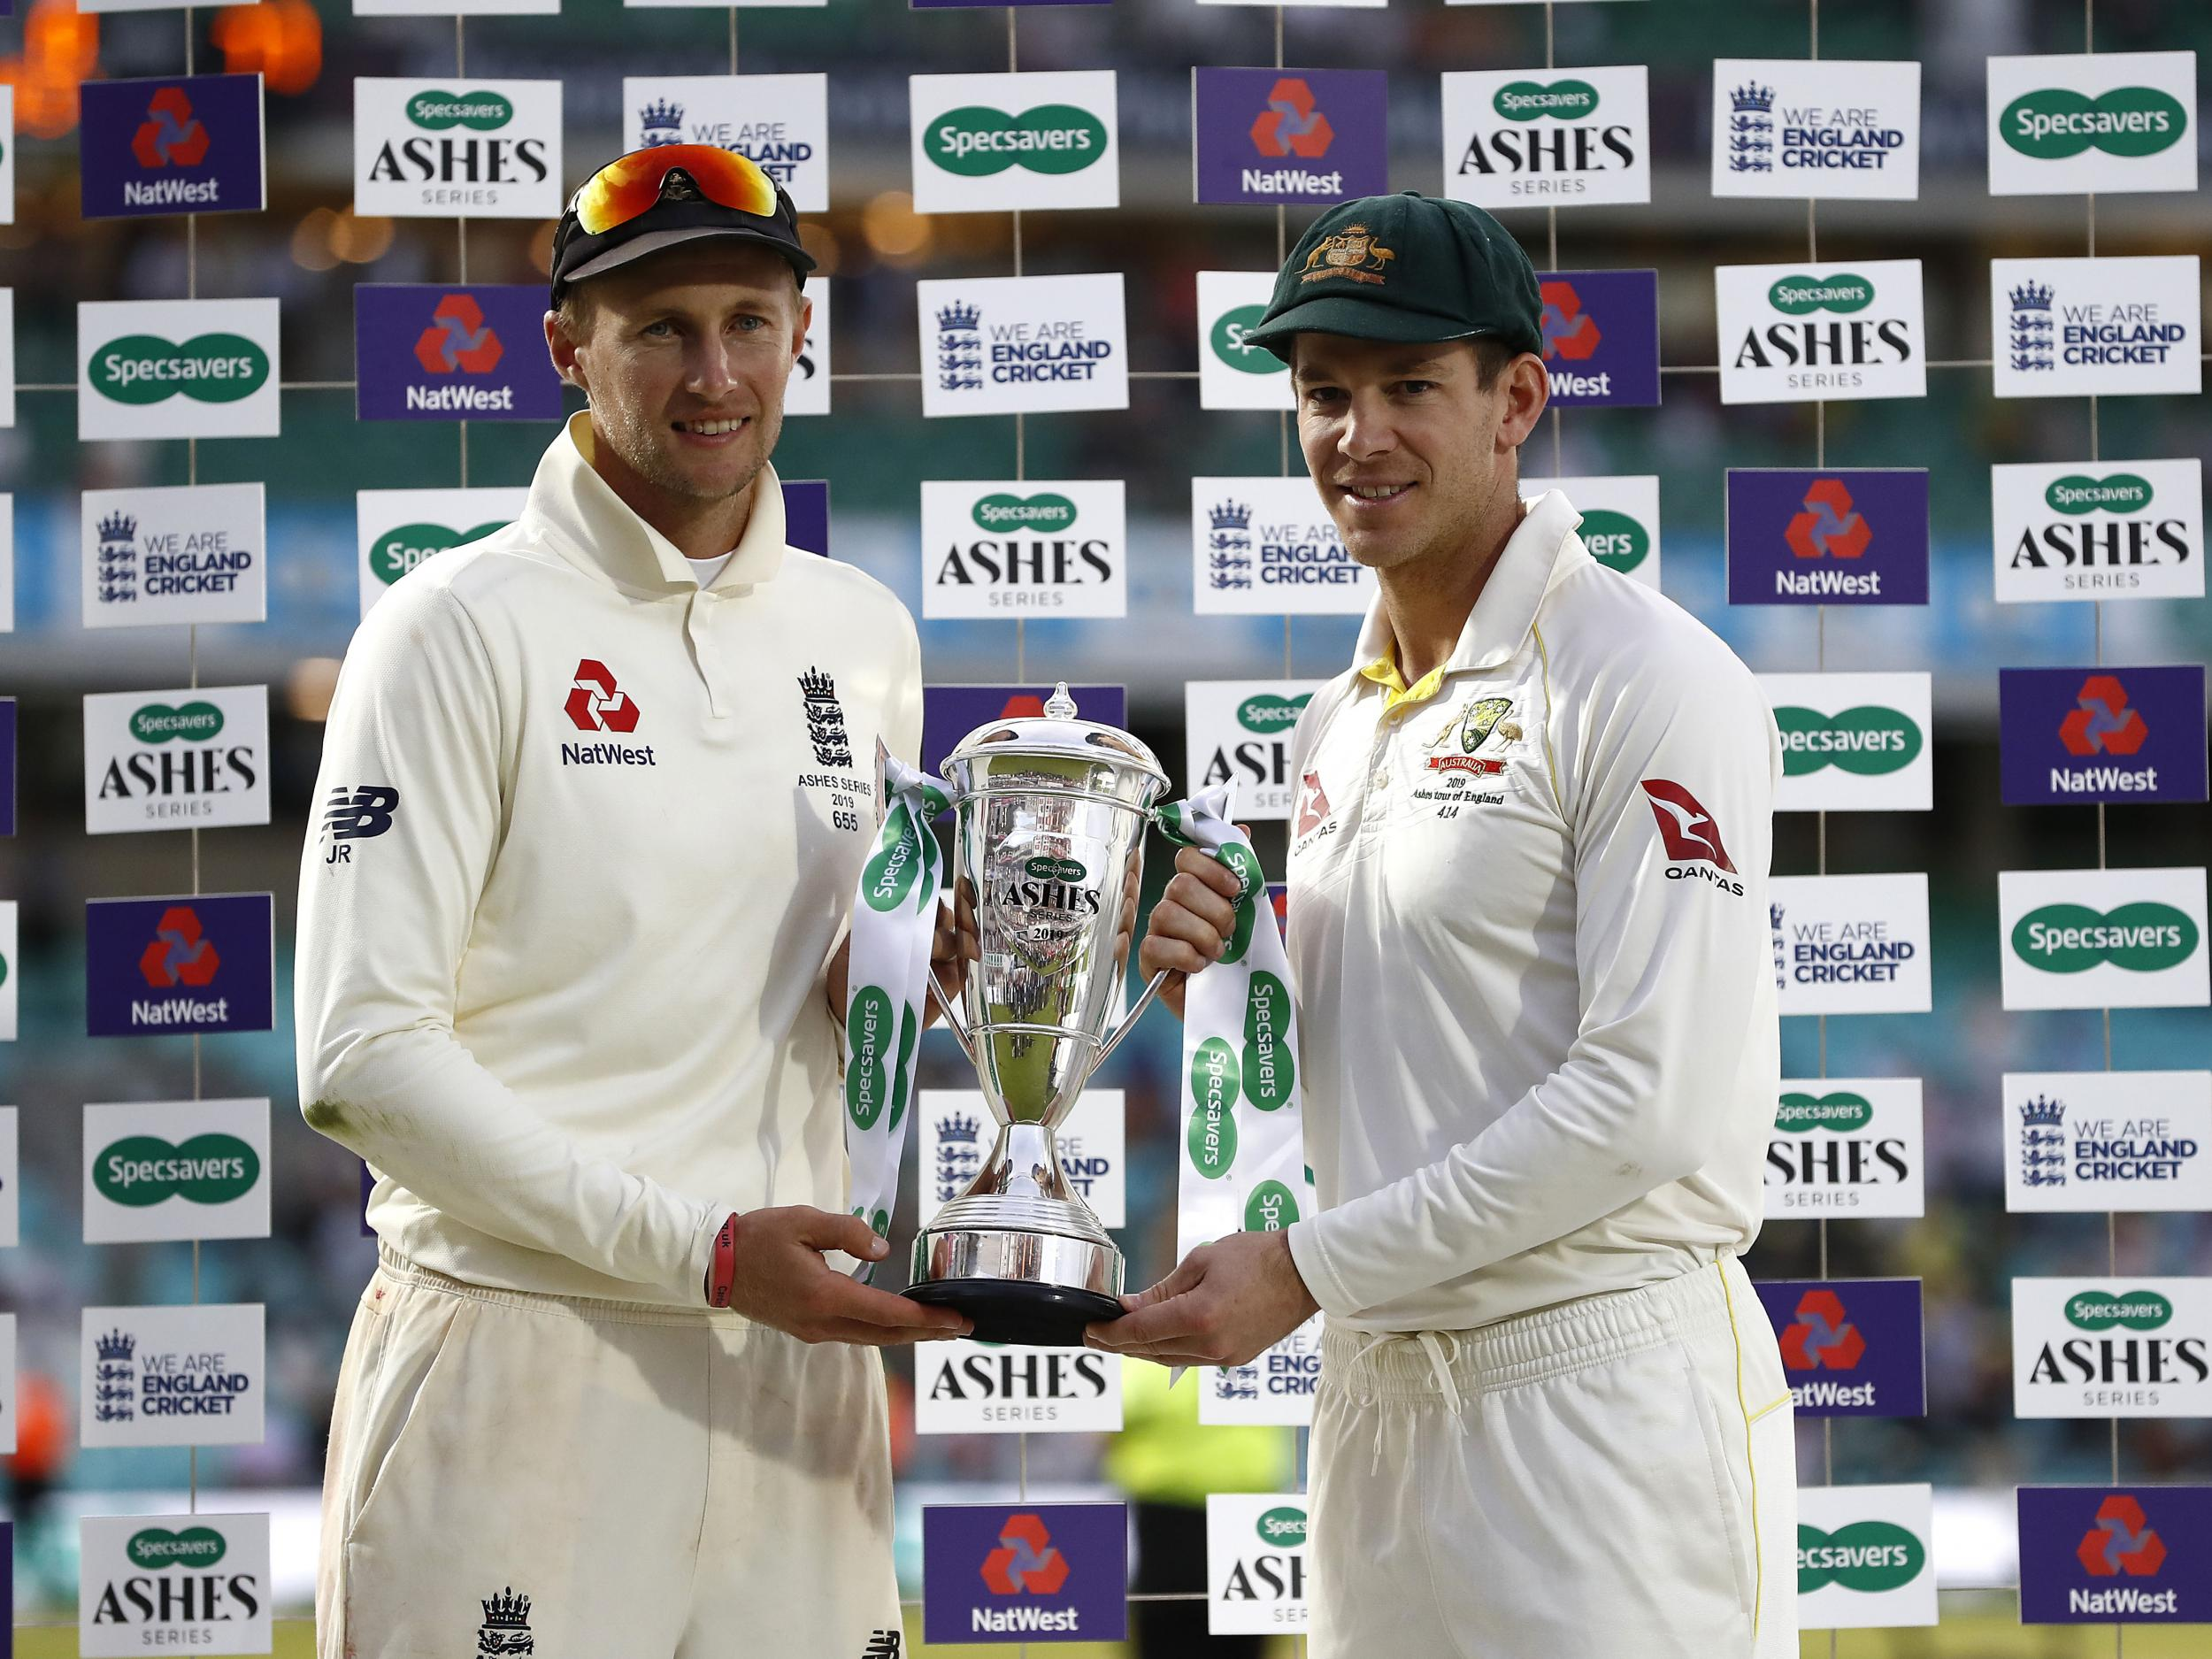 Ashes 2019: England and Australia bring curtain down on unforgettable summer